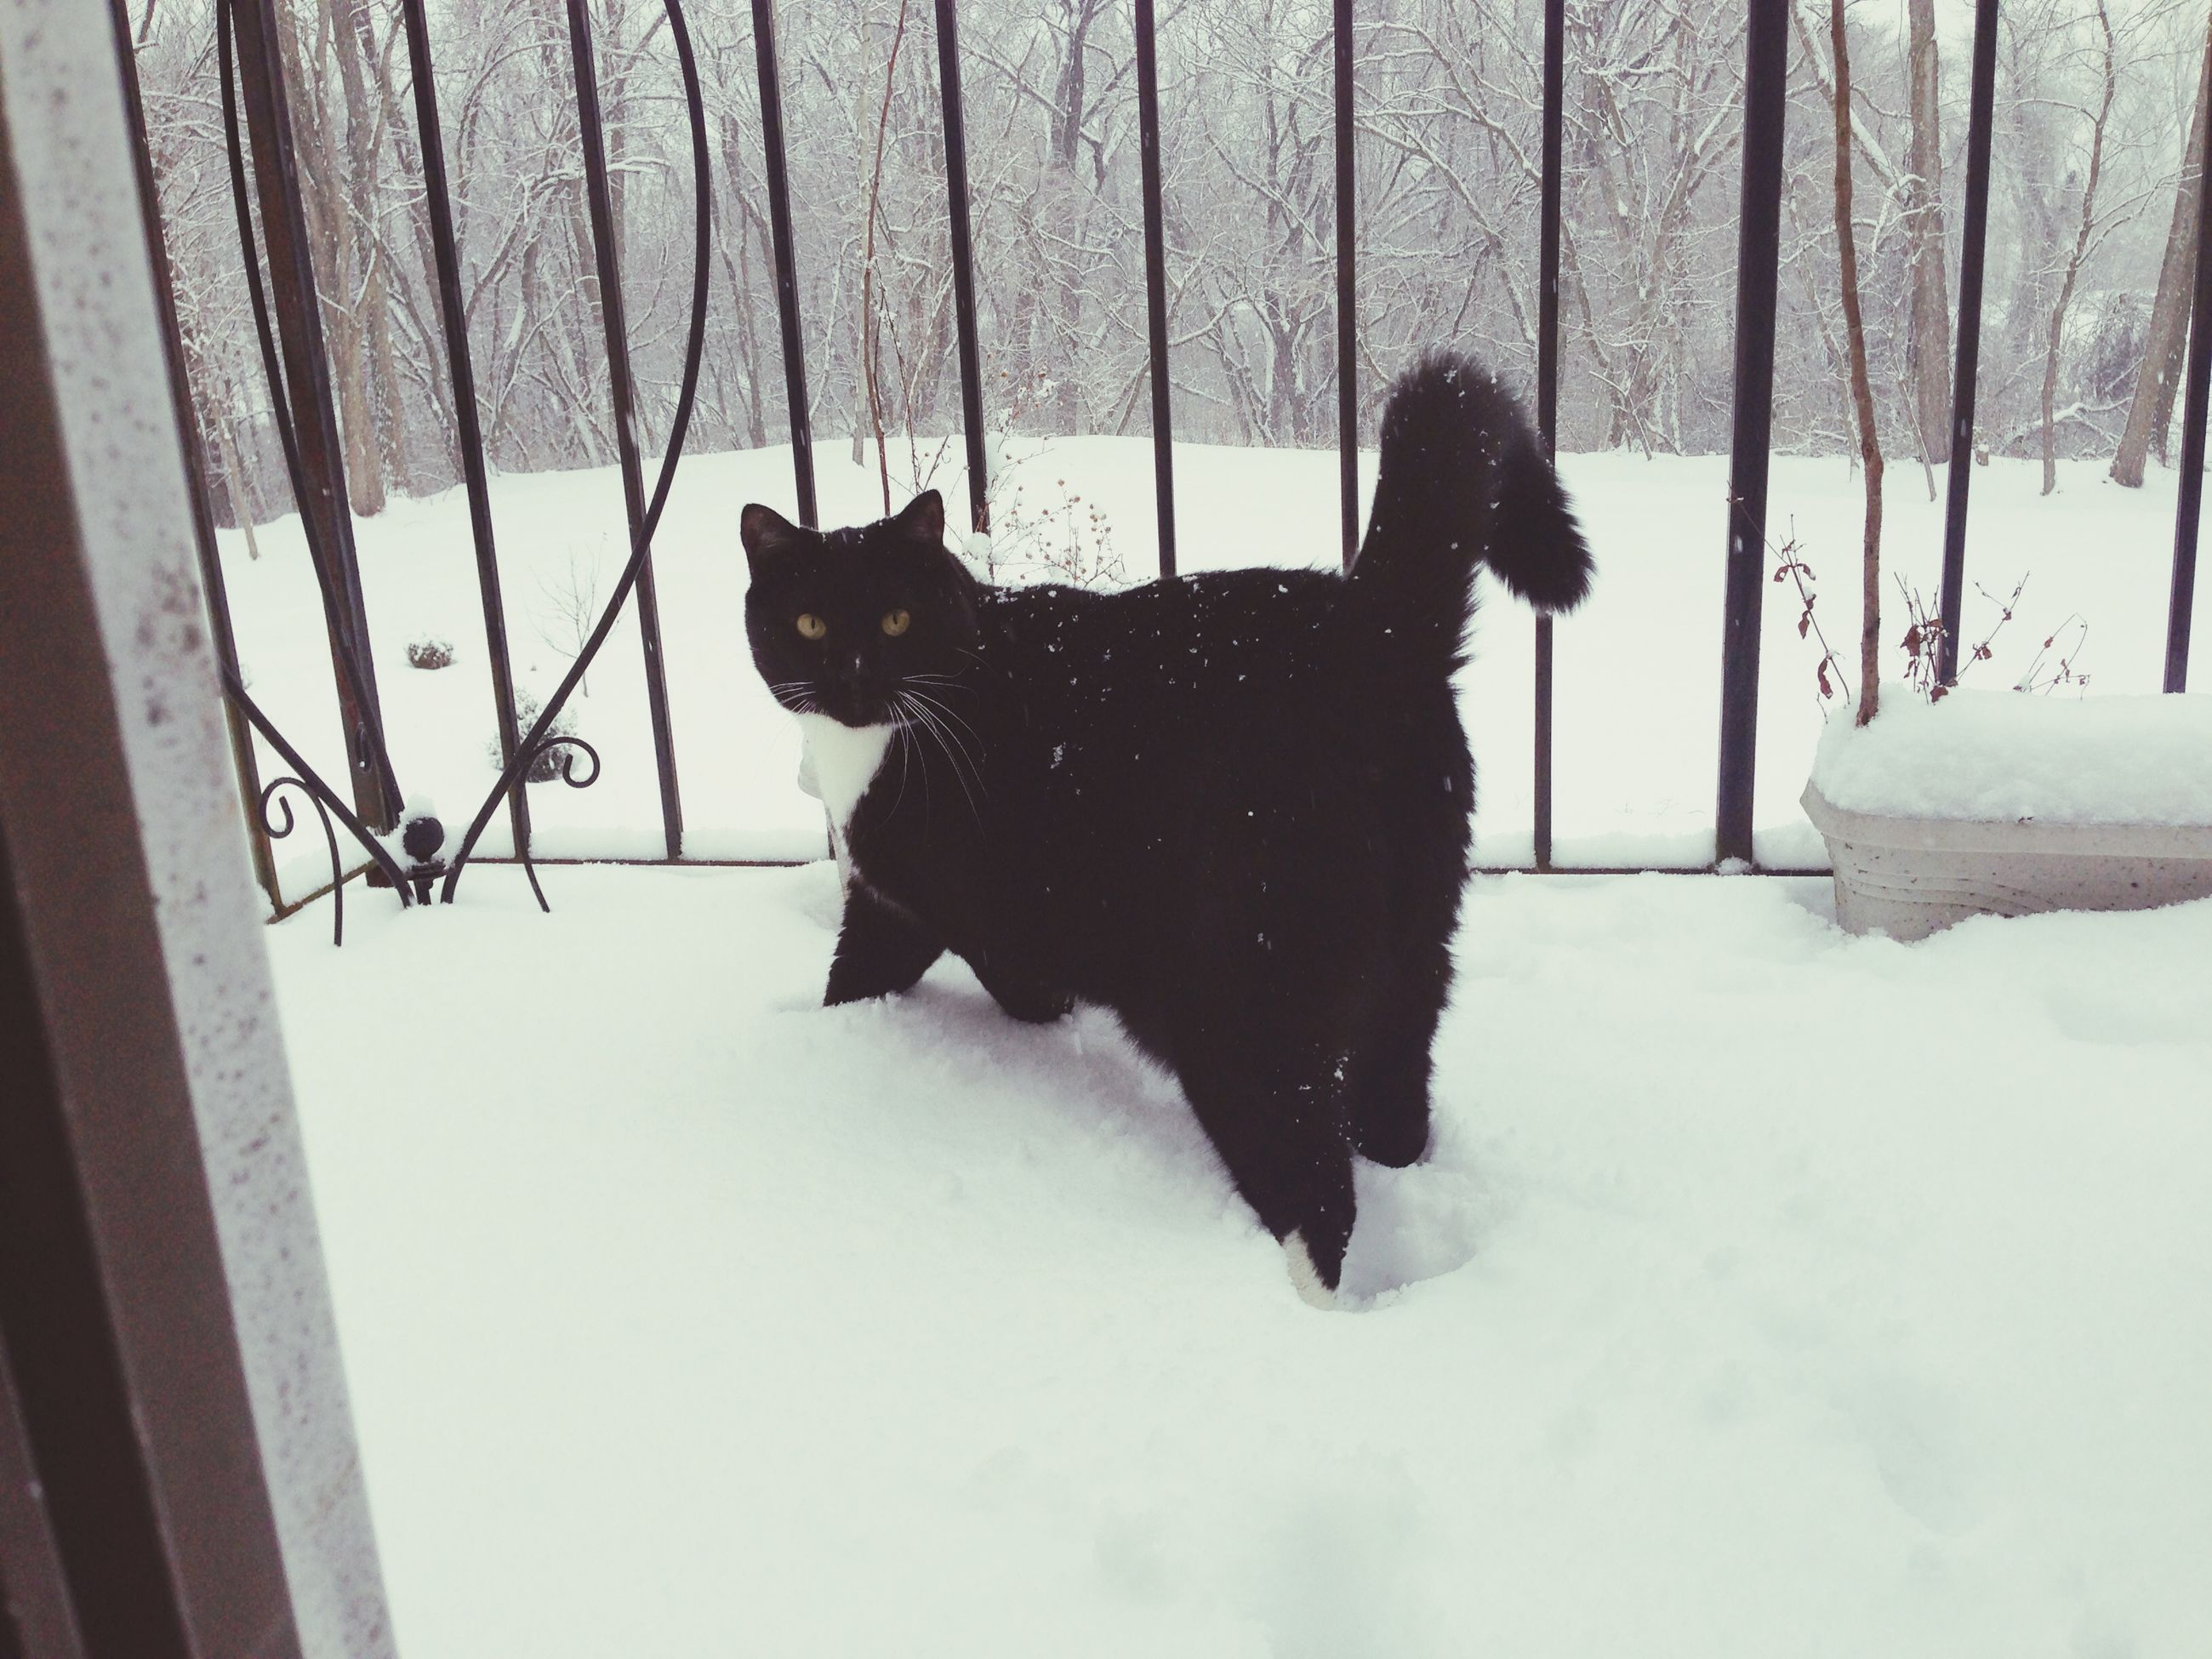 pets, domestic animals, snow, animal themes, winter, one animal, cold temperature, mammal, season, domestic cat, black color, cat, dog, weather, sitting, full length, silhouette, indoors, feline, covering